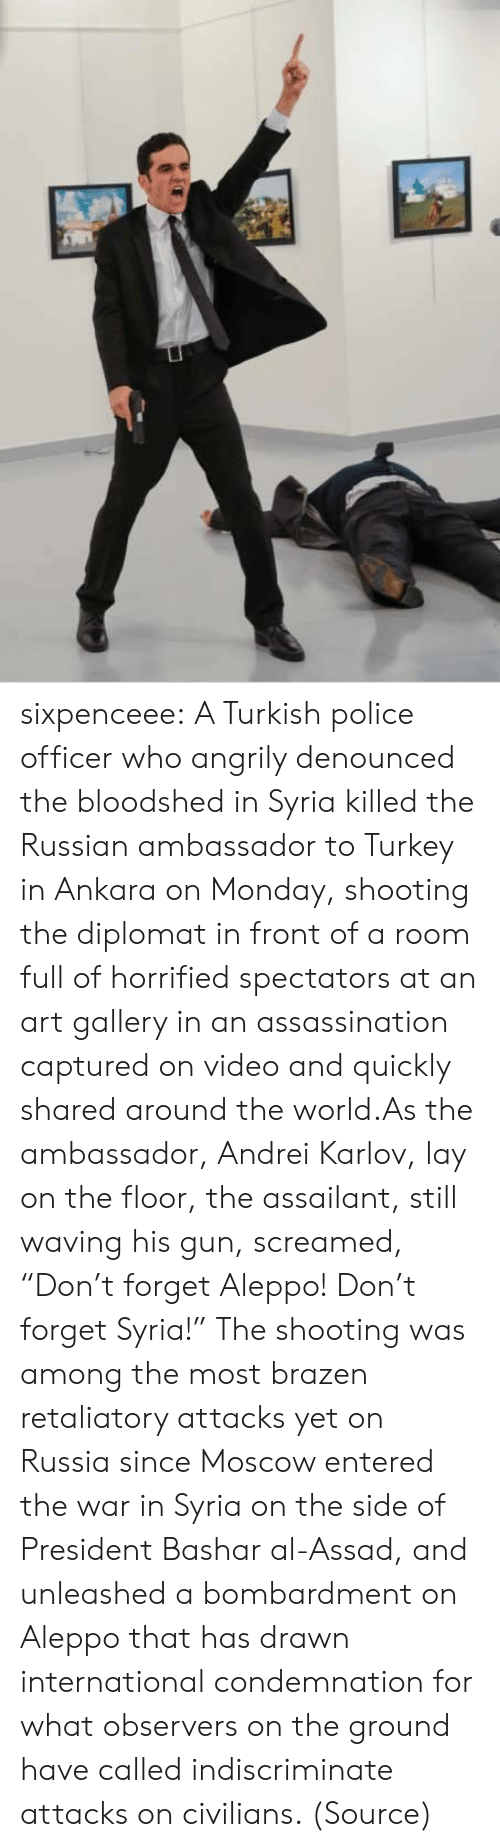 "Assassination, Police, and Tumblr: sixpenceee:  A Turkish police officer who angrily denounced the bloodshed in Syria killed the Russian ambassador to Turkey in Ankara on Monday, shooting the diplomat in front of a room full of horrified spectators at an art gallery in an assassination captured on video and quickly shared around the world.As the ambassador, Andrei Karlov, lay on the floor, the assailant, still waving his gun, screamed, ""Don't forget Aleppo! Don't forget Syria!"" The shooting was among the most brazen retaliatory attacks yet on Russia since Moscow entered the war in Syria on the side of President Bashar al-Assad, and unleashed a bombardment on Aleppo that has drawn international condemnation for what observers on the ground have called indiscriminate attacks on civilians. (Source)"